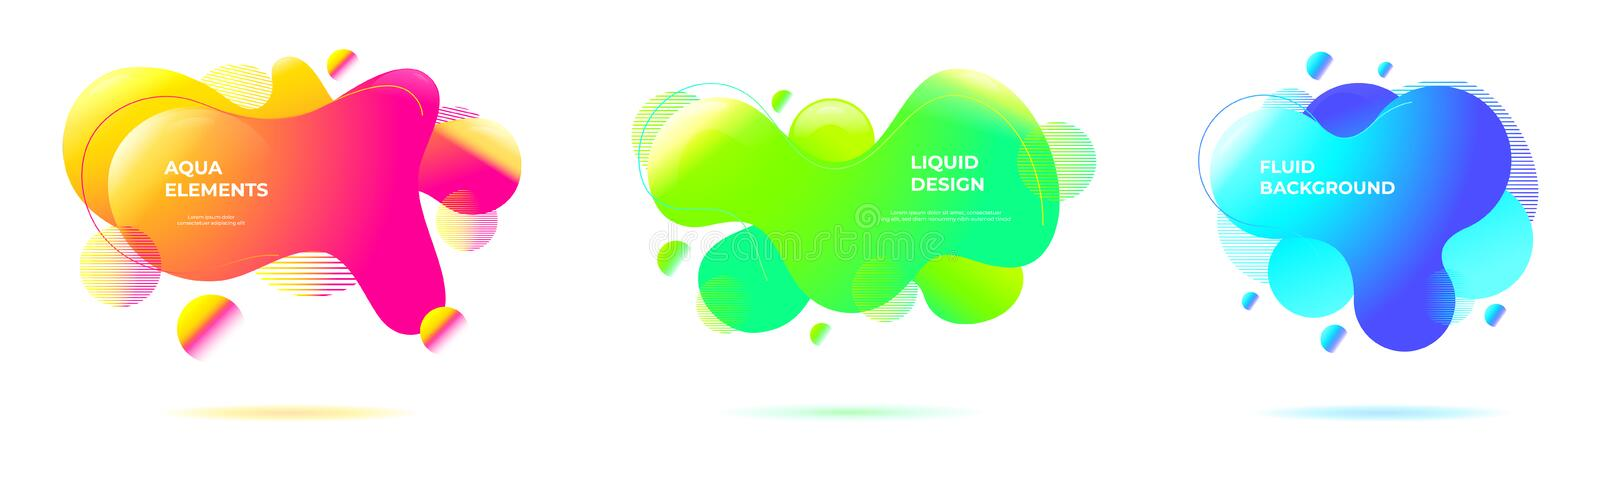 Set of abstract liquid backgrounds. Geometric fluid shapes and organic forms with vivid color blends in neon tones royalty free illustration